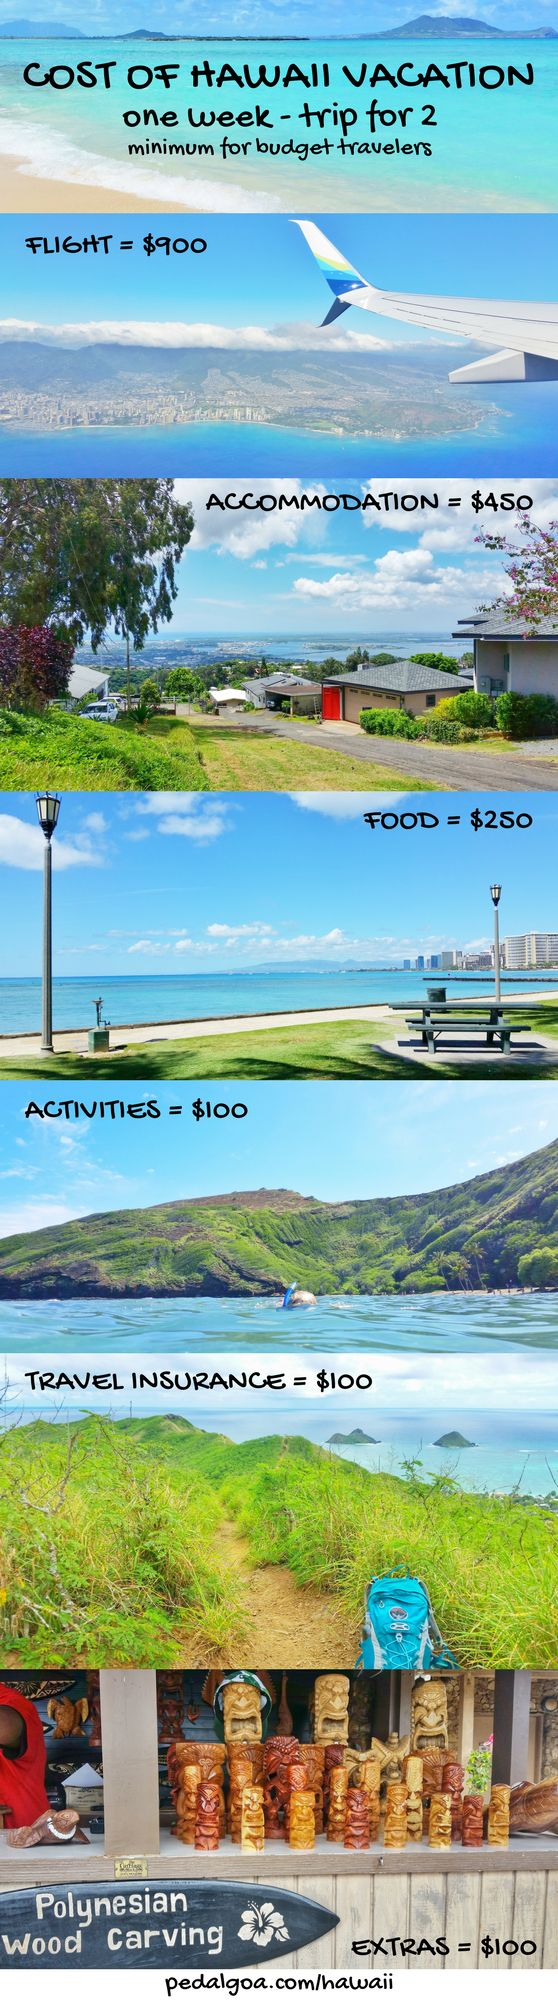 For things to do in Hawaii on a budget, whether Oahu, Maui, Kauai, or Big Island, save money and have fun on Hawaii vacation with beaches, snorkeling, hiking ideas! What you pack and wear adds cost for your Hawaii packing list but find cheap (er) flights, hotels (airbnb vacation rentals), food, free activities without gift shopping. ;) Prices for planning this USA bucket list destination! Apply budget travel tips on all Hawaiian islands, whether honeymoon, wedding, anniversary celebration!